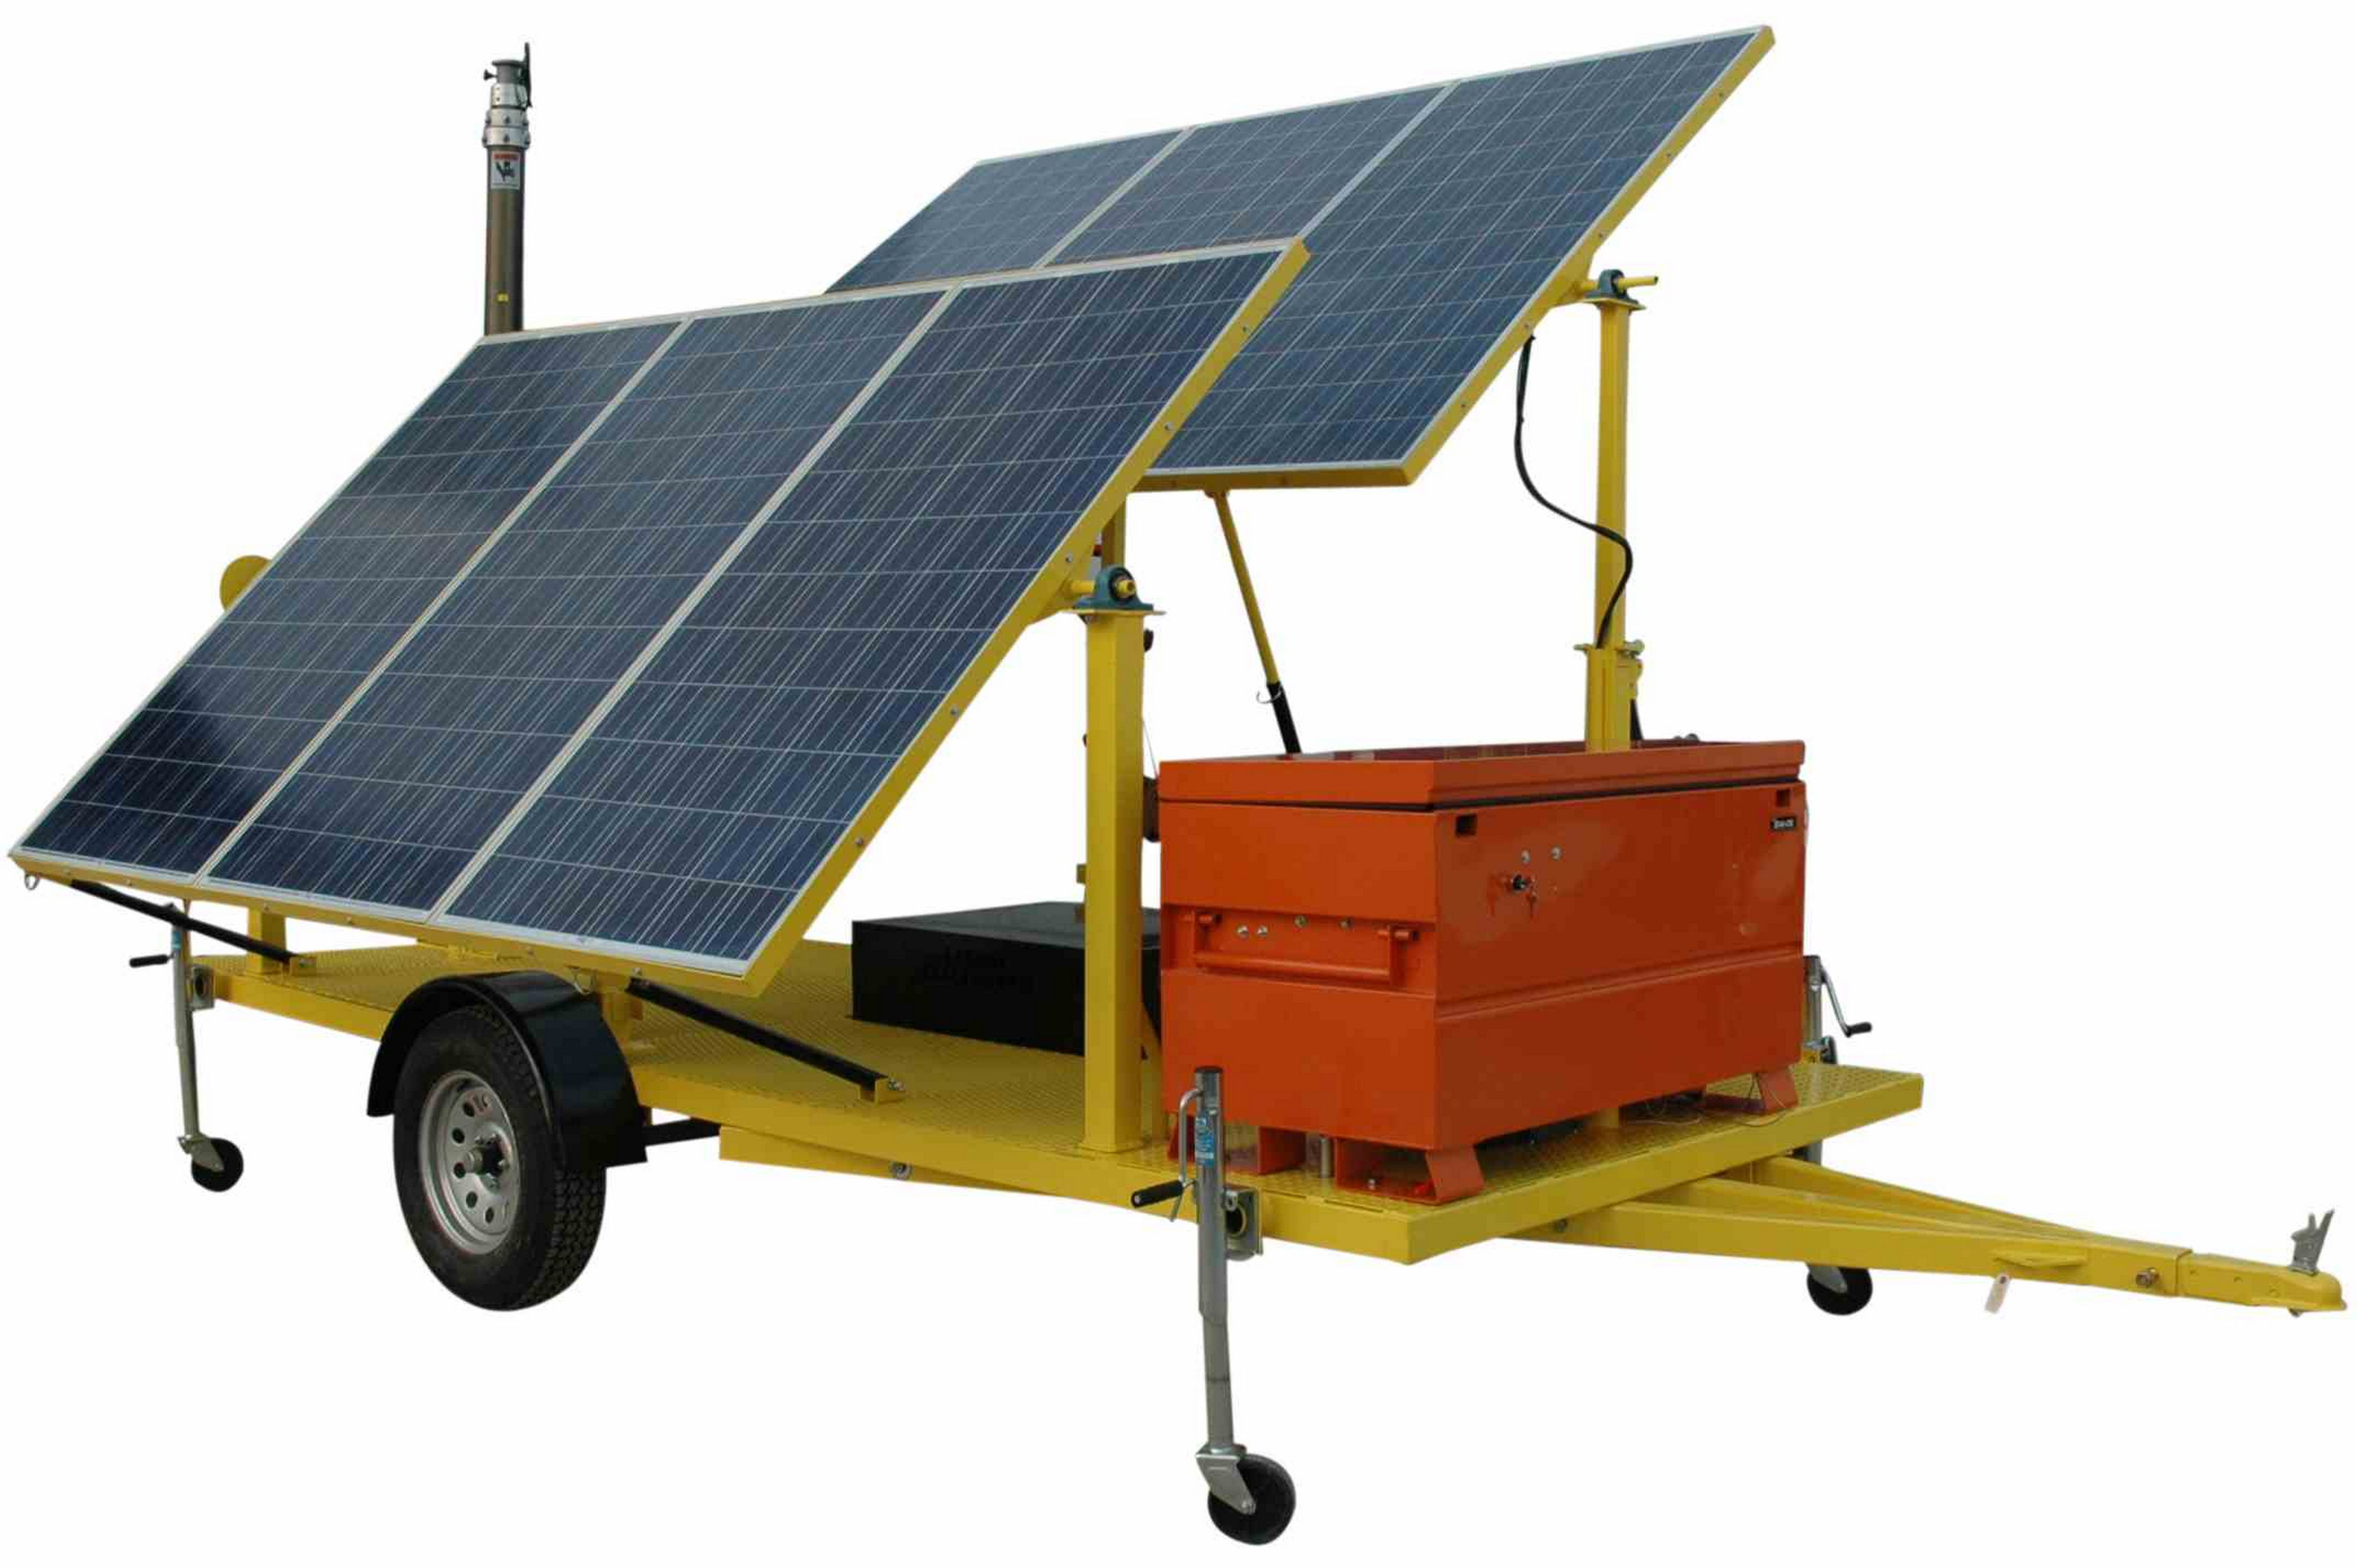 Led Panel 80 X 30 1.8kw Solar Power Generator With Pneumatic Light Tower Mast - Larson Electronics